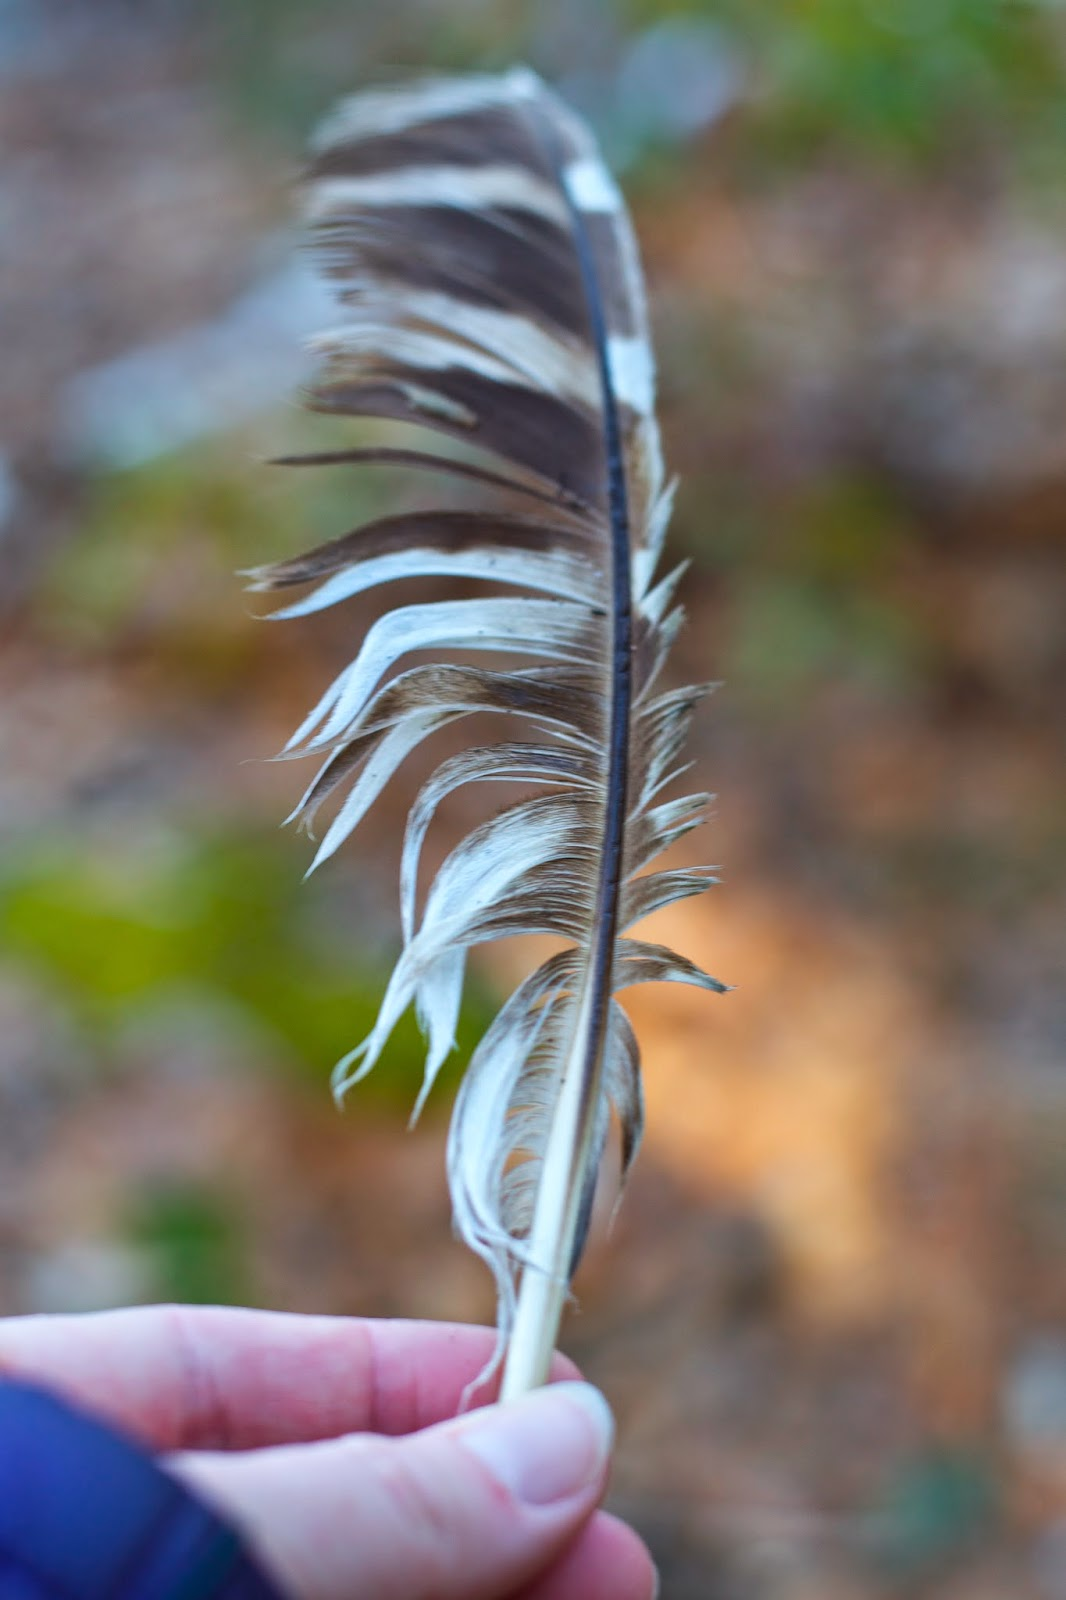 Turkey feather found on the trail.